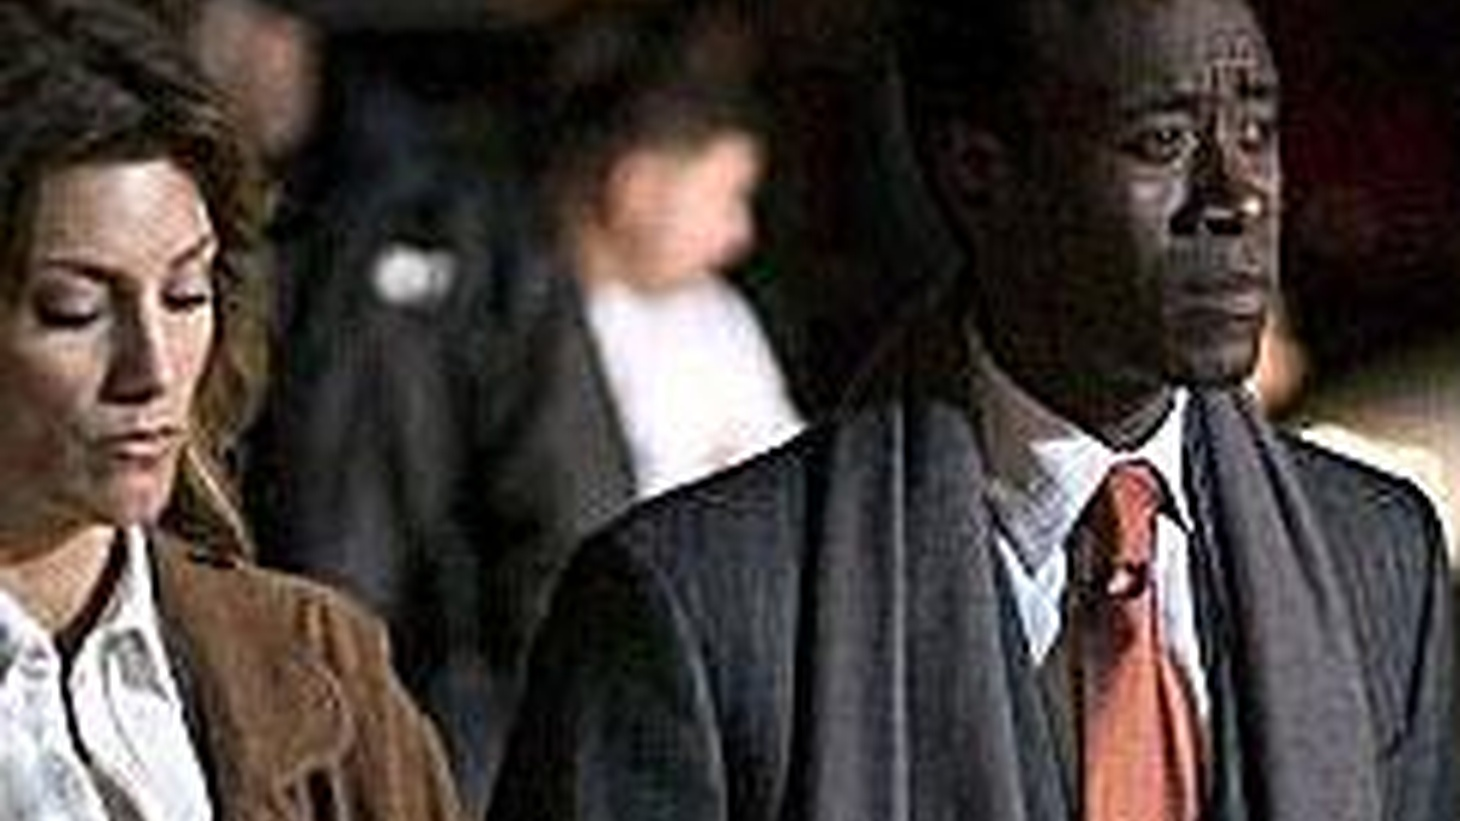 Oscar-nominated ensemble-drama, Crash, had to go through a number of intersections to get made.  It dook Don Cheadle (Devil in a Blue Dress, Hotel Rwanda) to get it to the finish line.